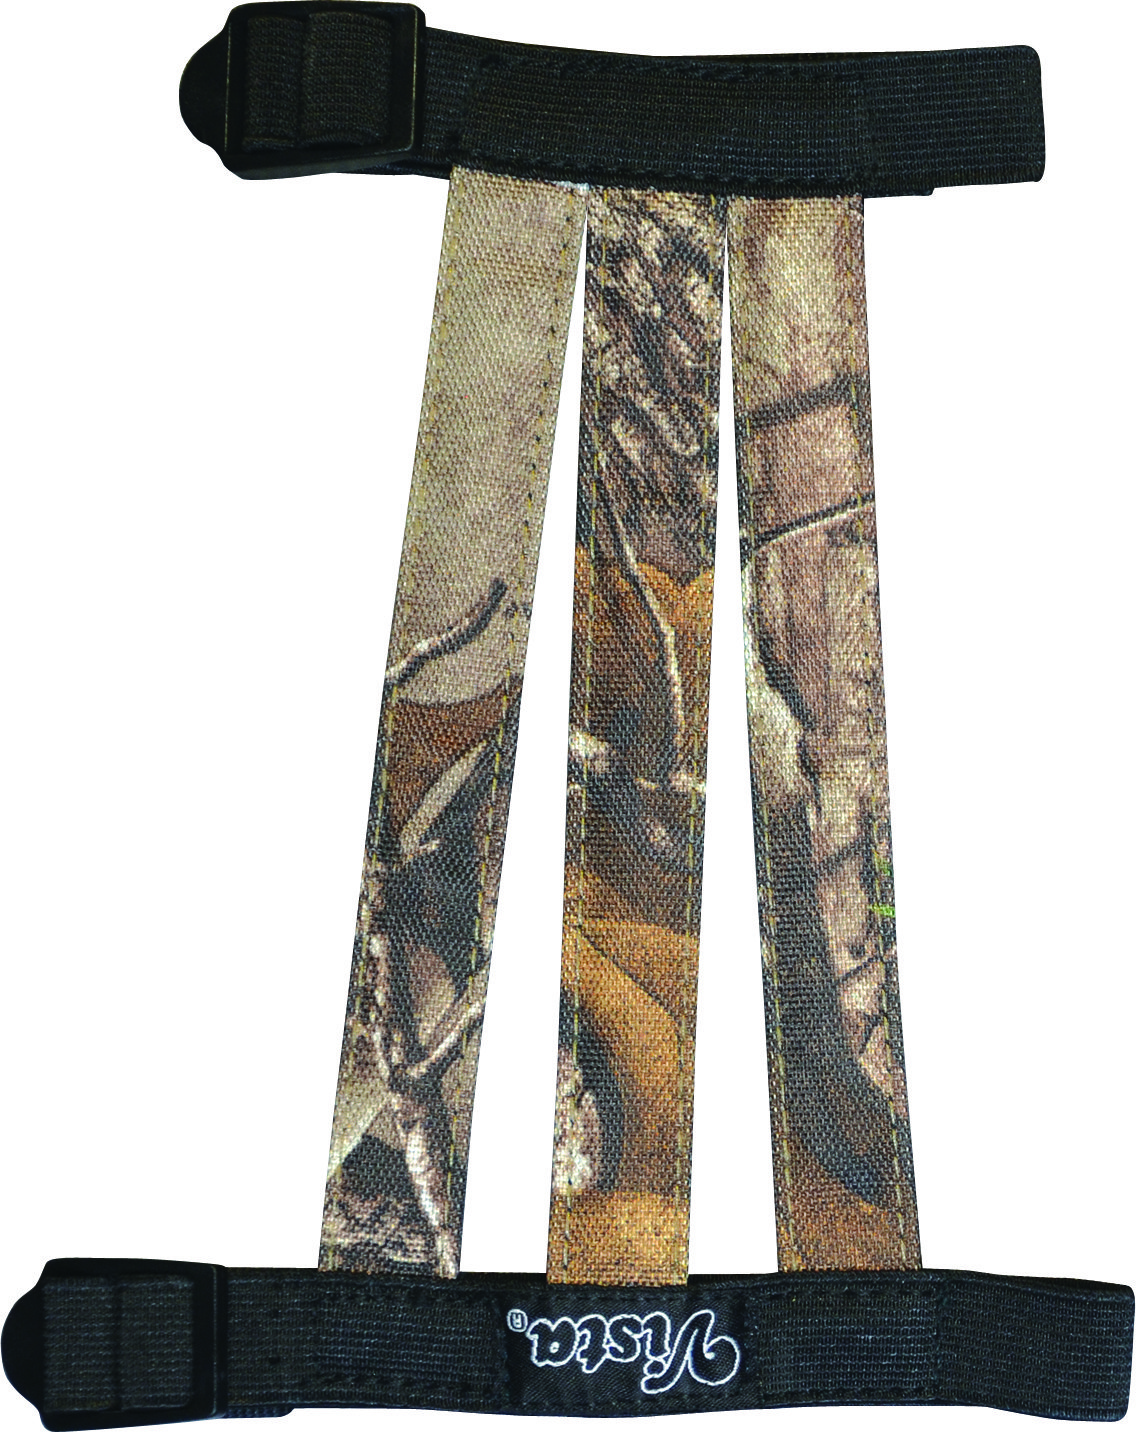 #4160 Ultra-Lite Short Vented Armguard with Velcro thumbnail